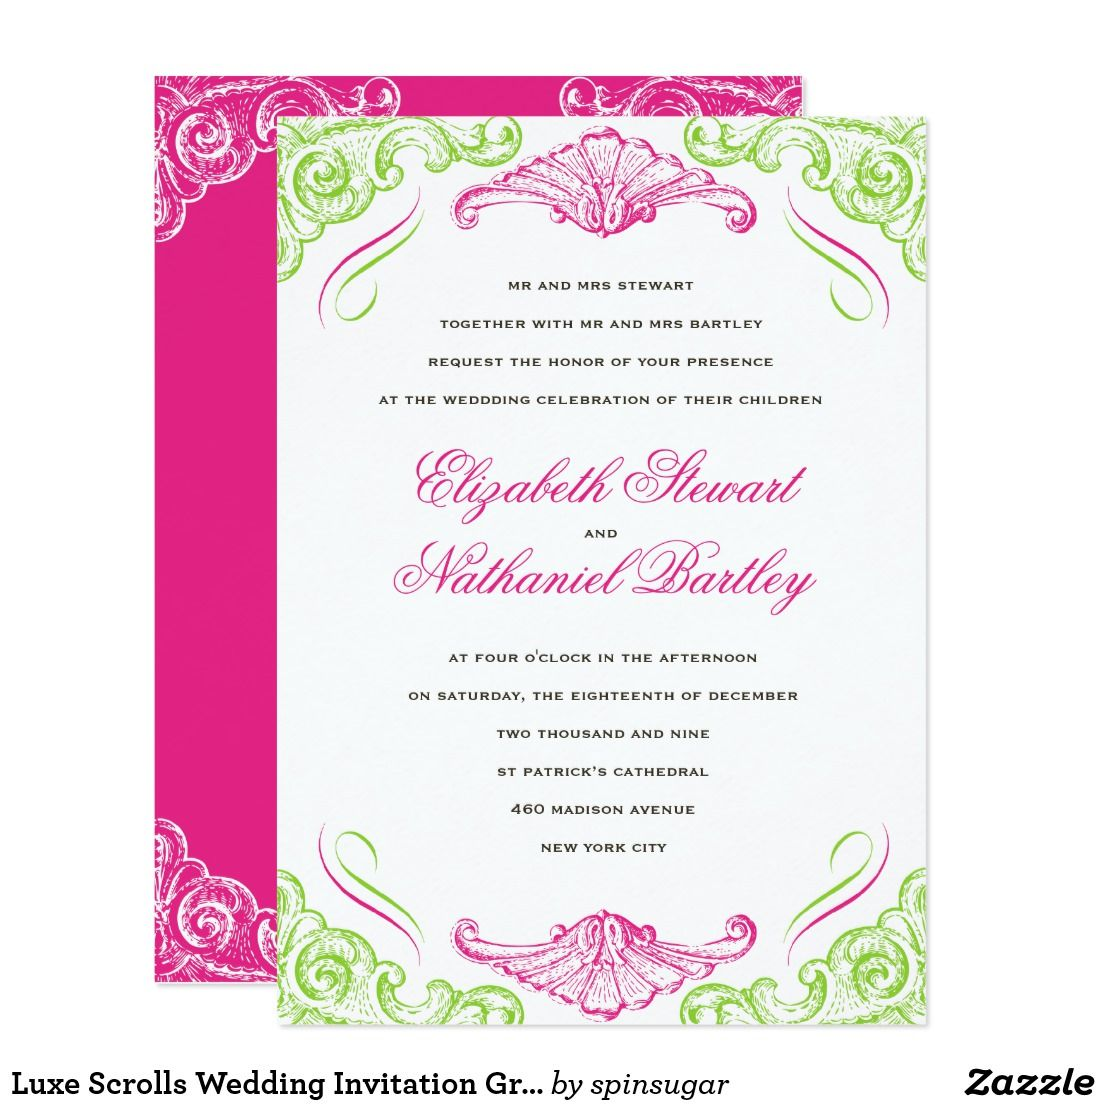 Luxe Scrolls Wedding Invitation Green Pink | Wedding Ideas, Favors ...